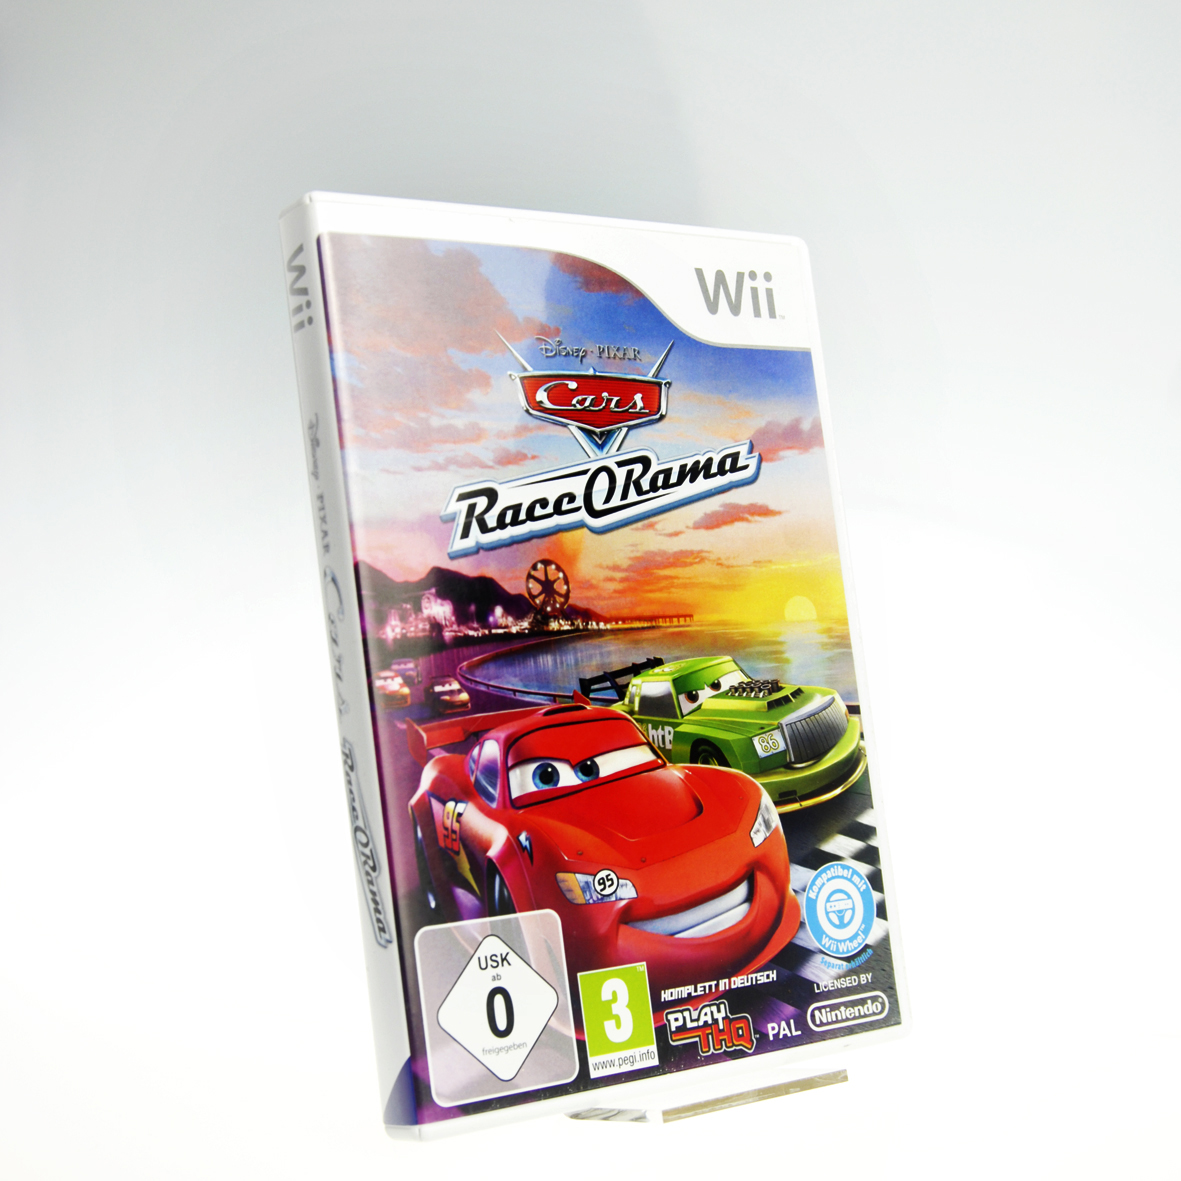 wii cars race o rama ovp ohne anleitung 4012160010764 ebay. Black Bedroom Furniture Sets. Home Design Ideas